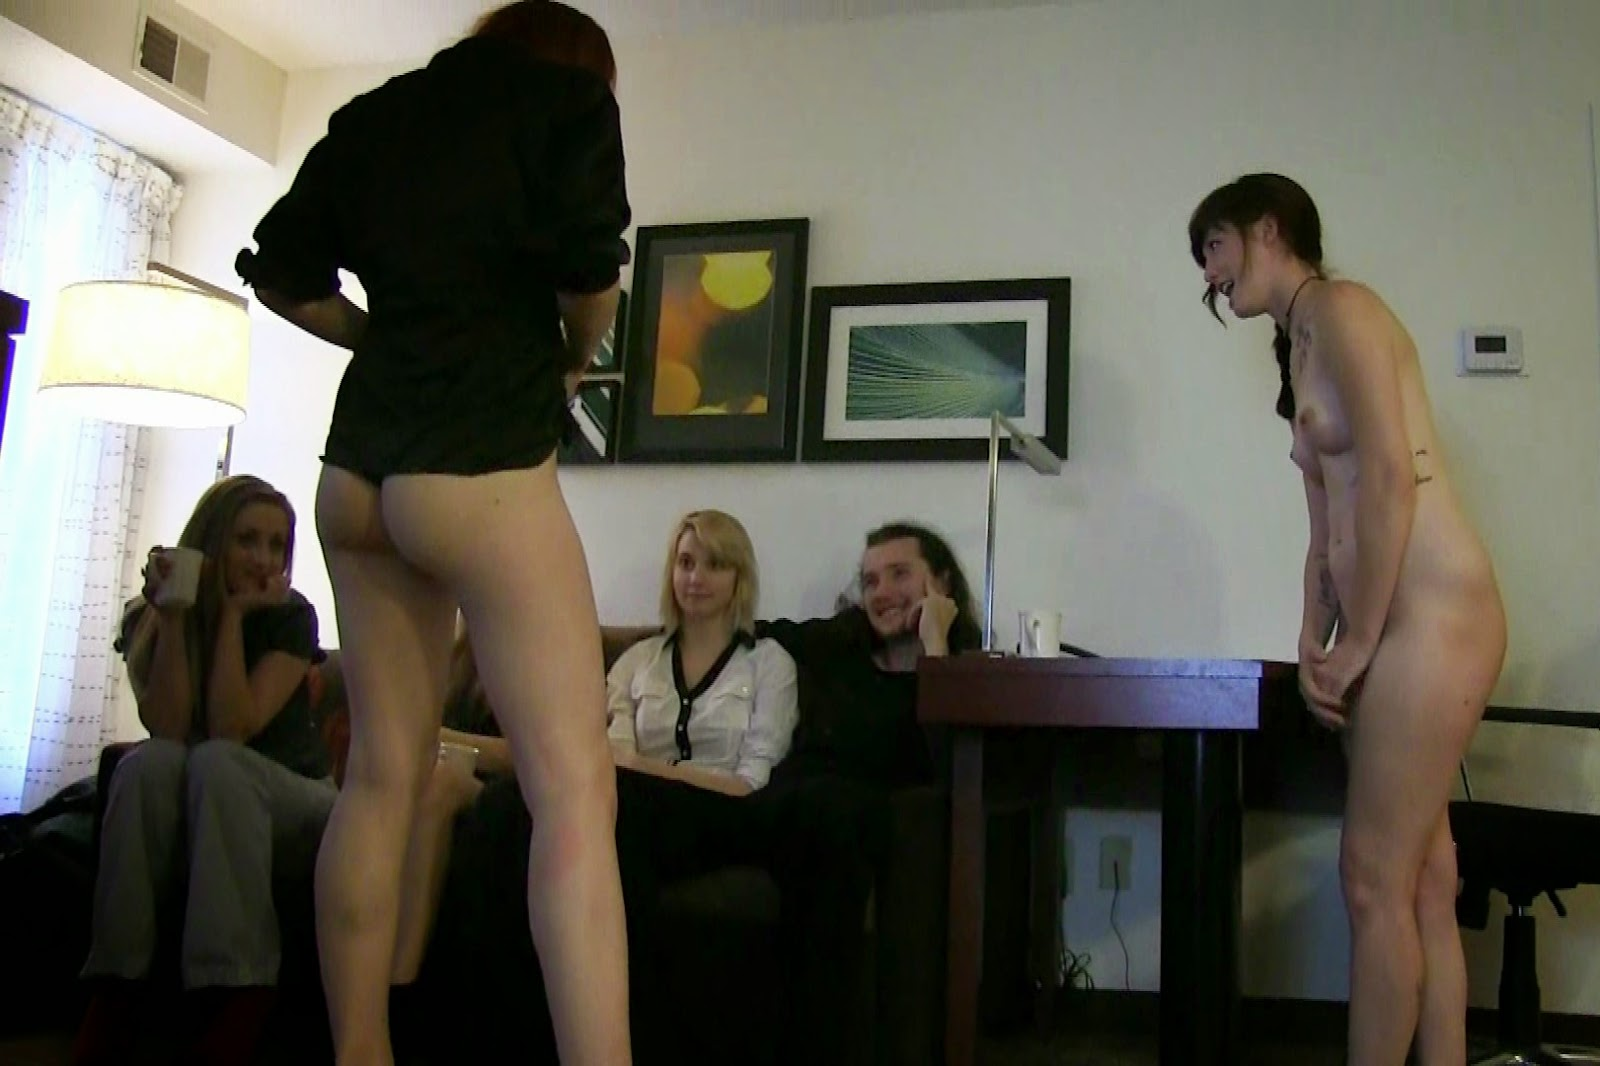 Lost Bet Strip Naked 108